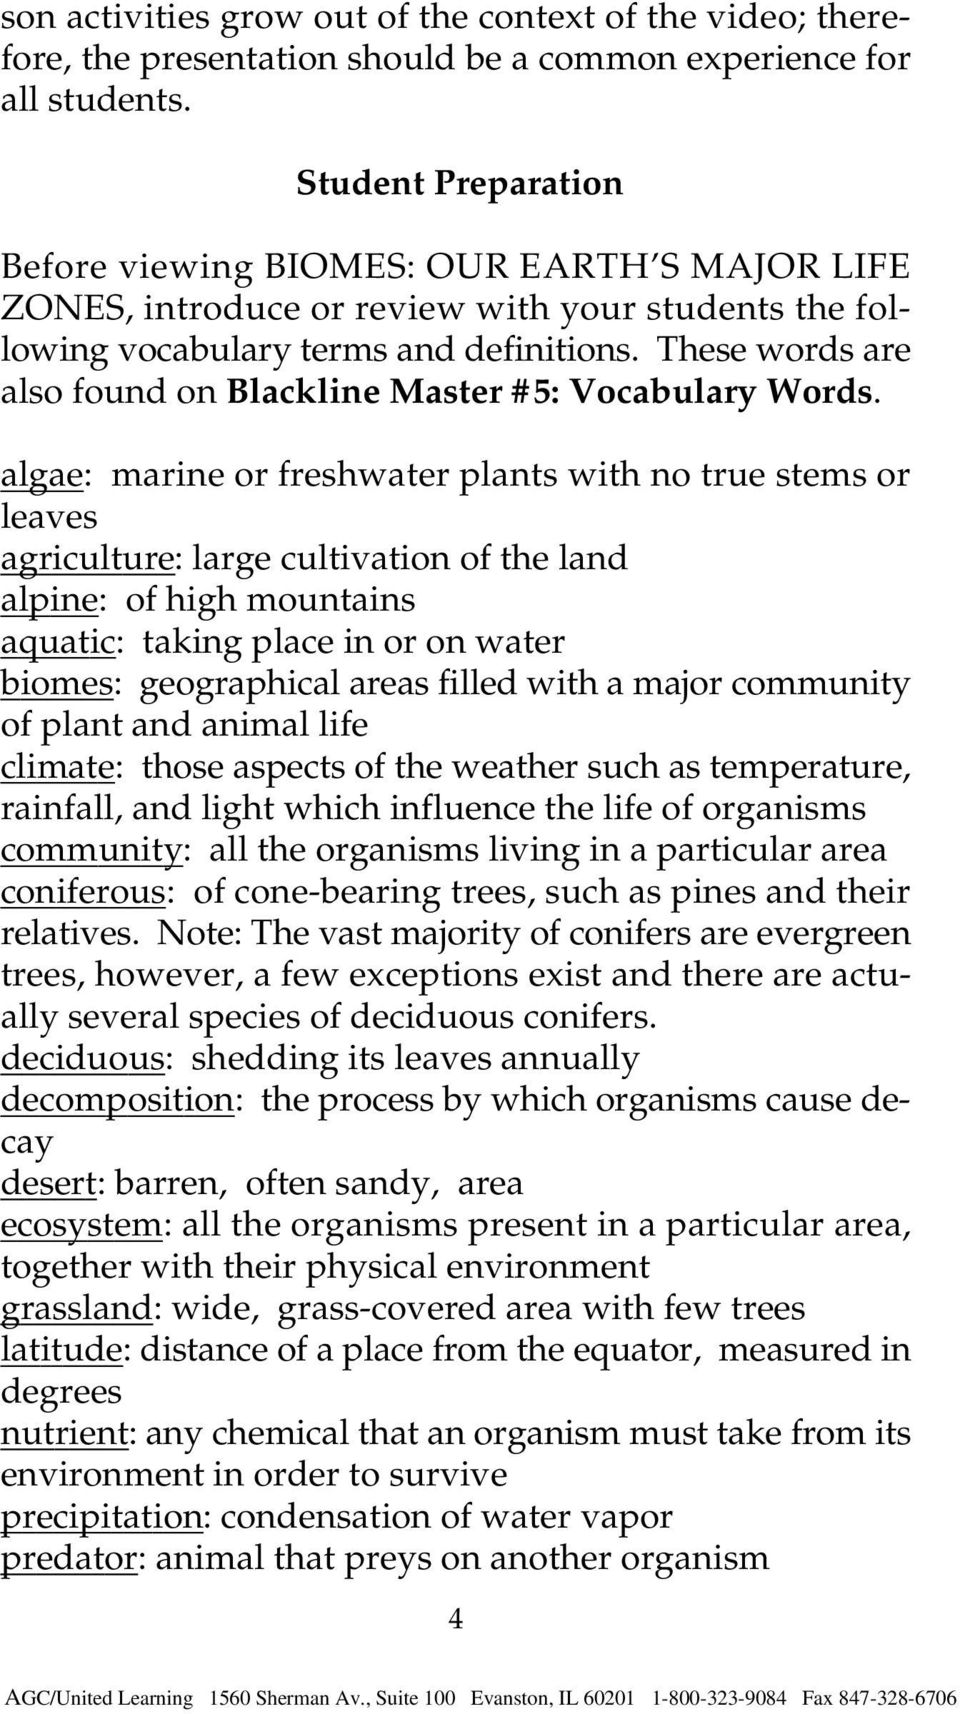 These words are also found on Blackline Master #5: Vocabulary Words.